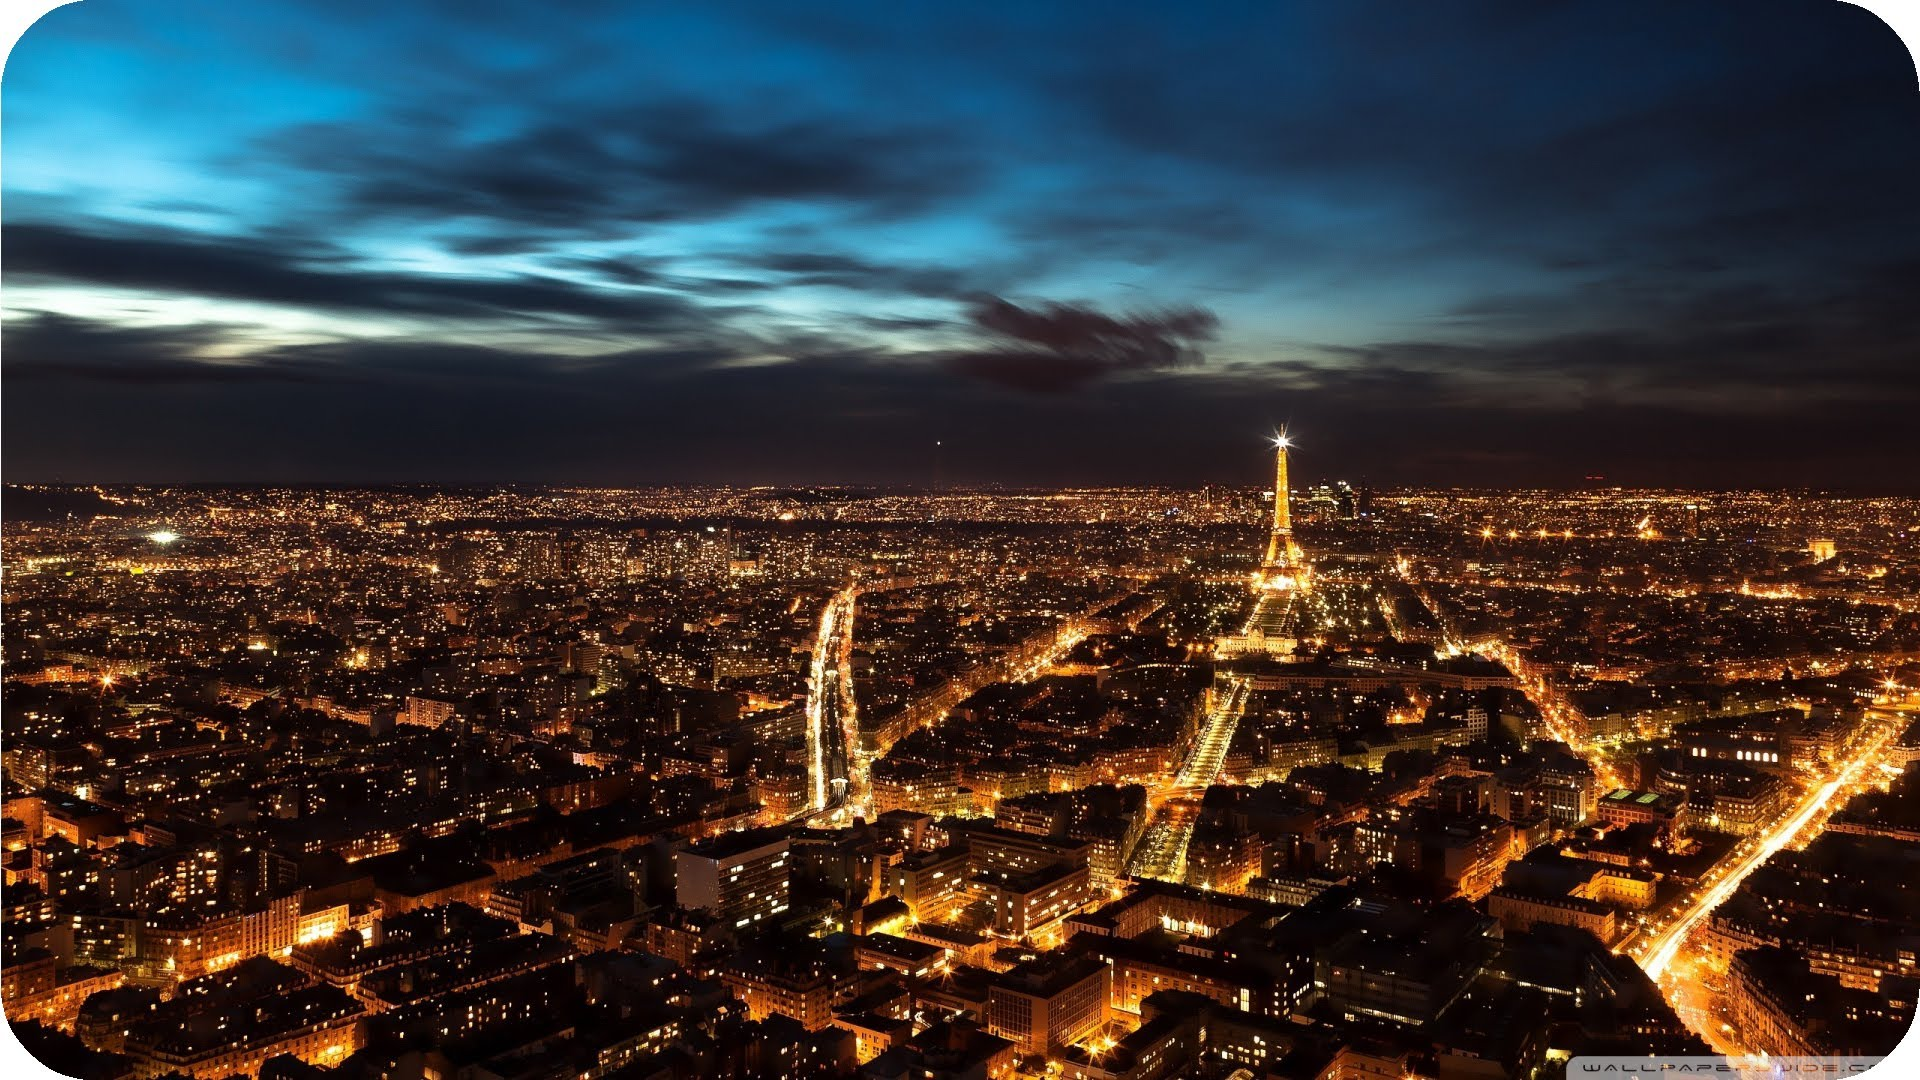 Paris, The City of Light Full Length - YouTube